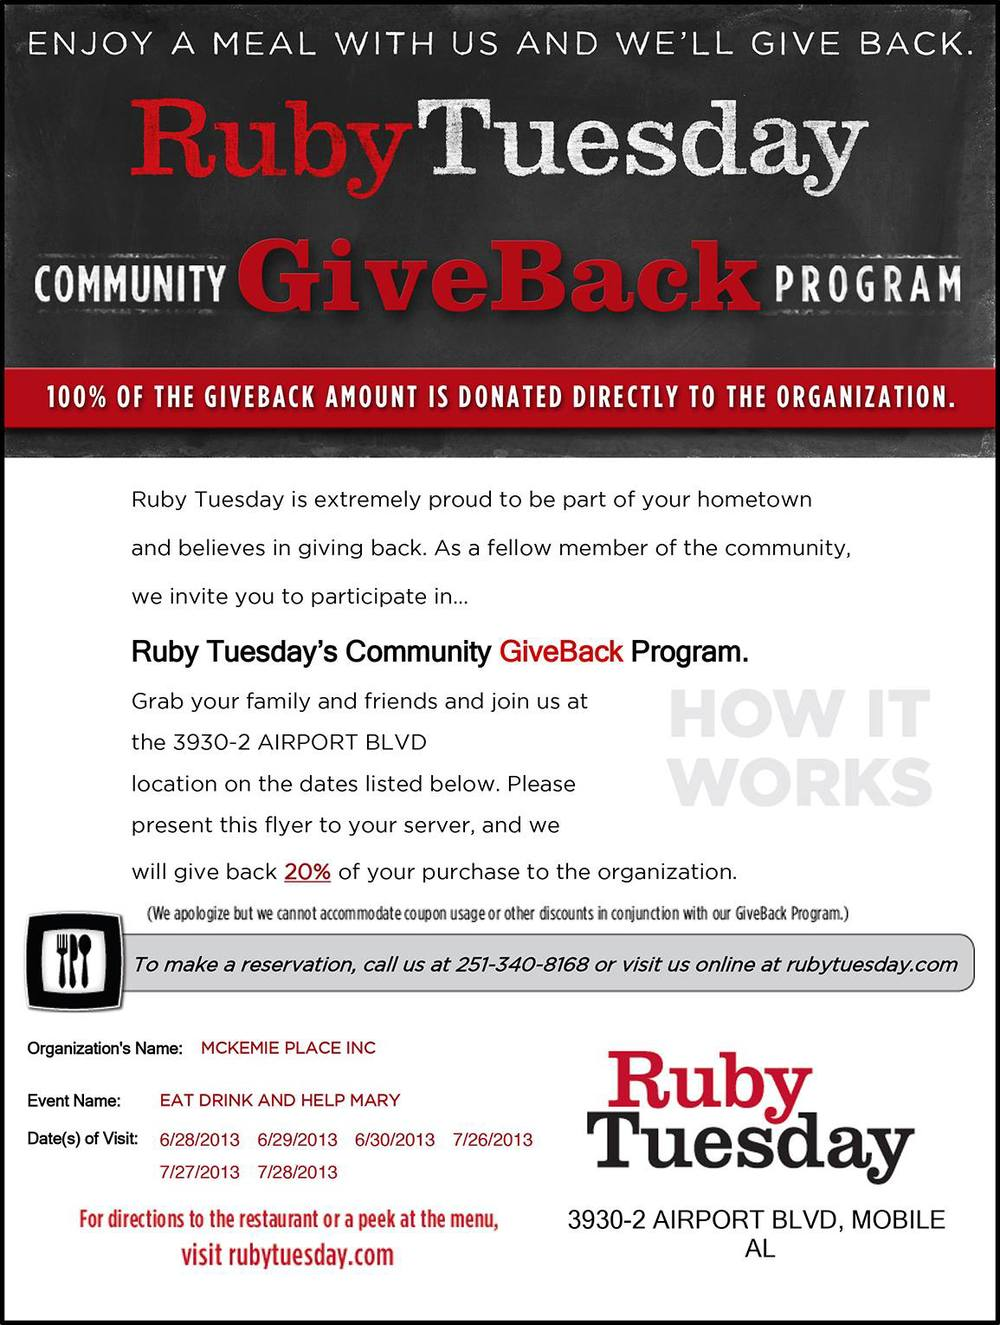 Print out this image and bring it into the Ruby Tuesday on Airport BLVD in Mobile to give 20% back to the community.